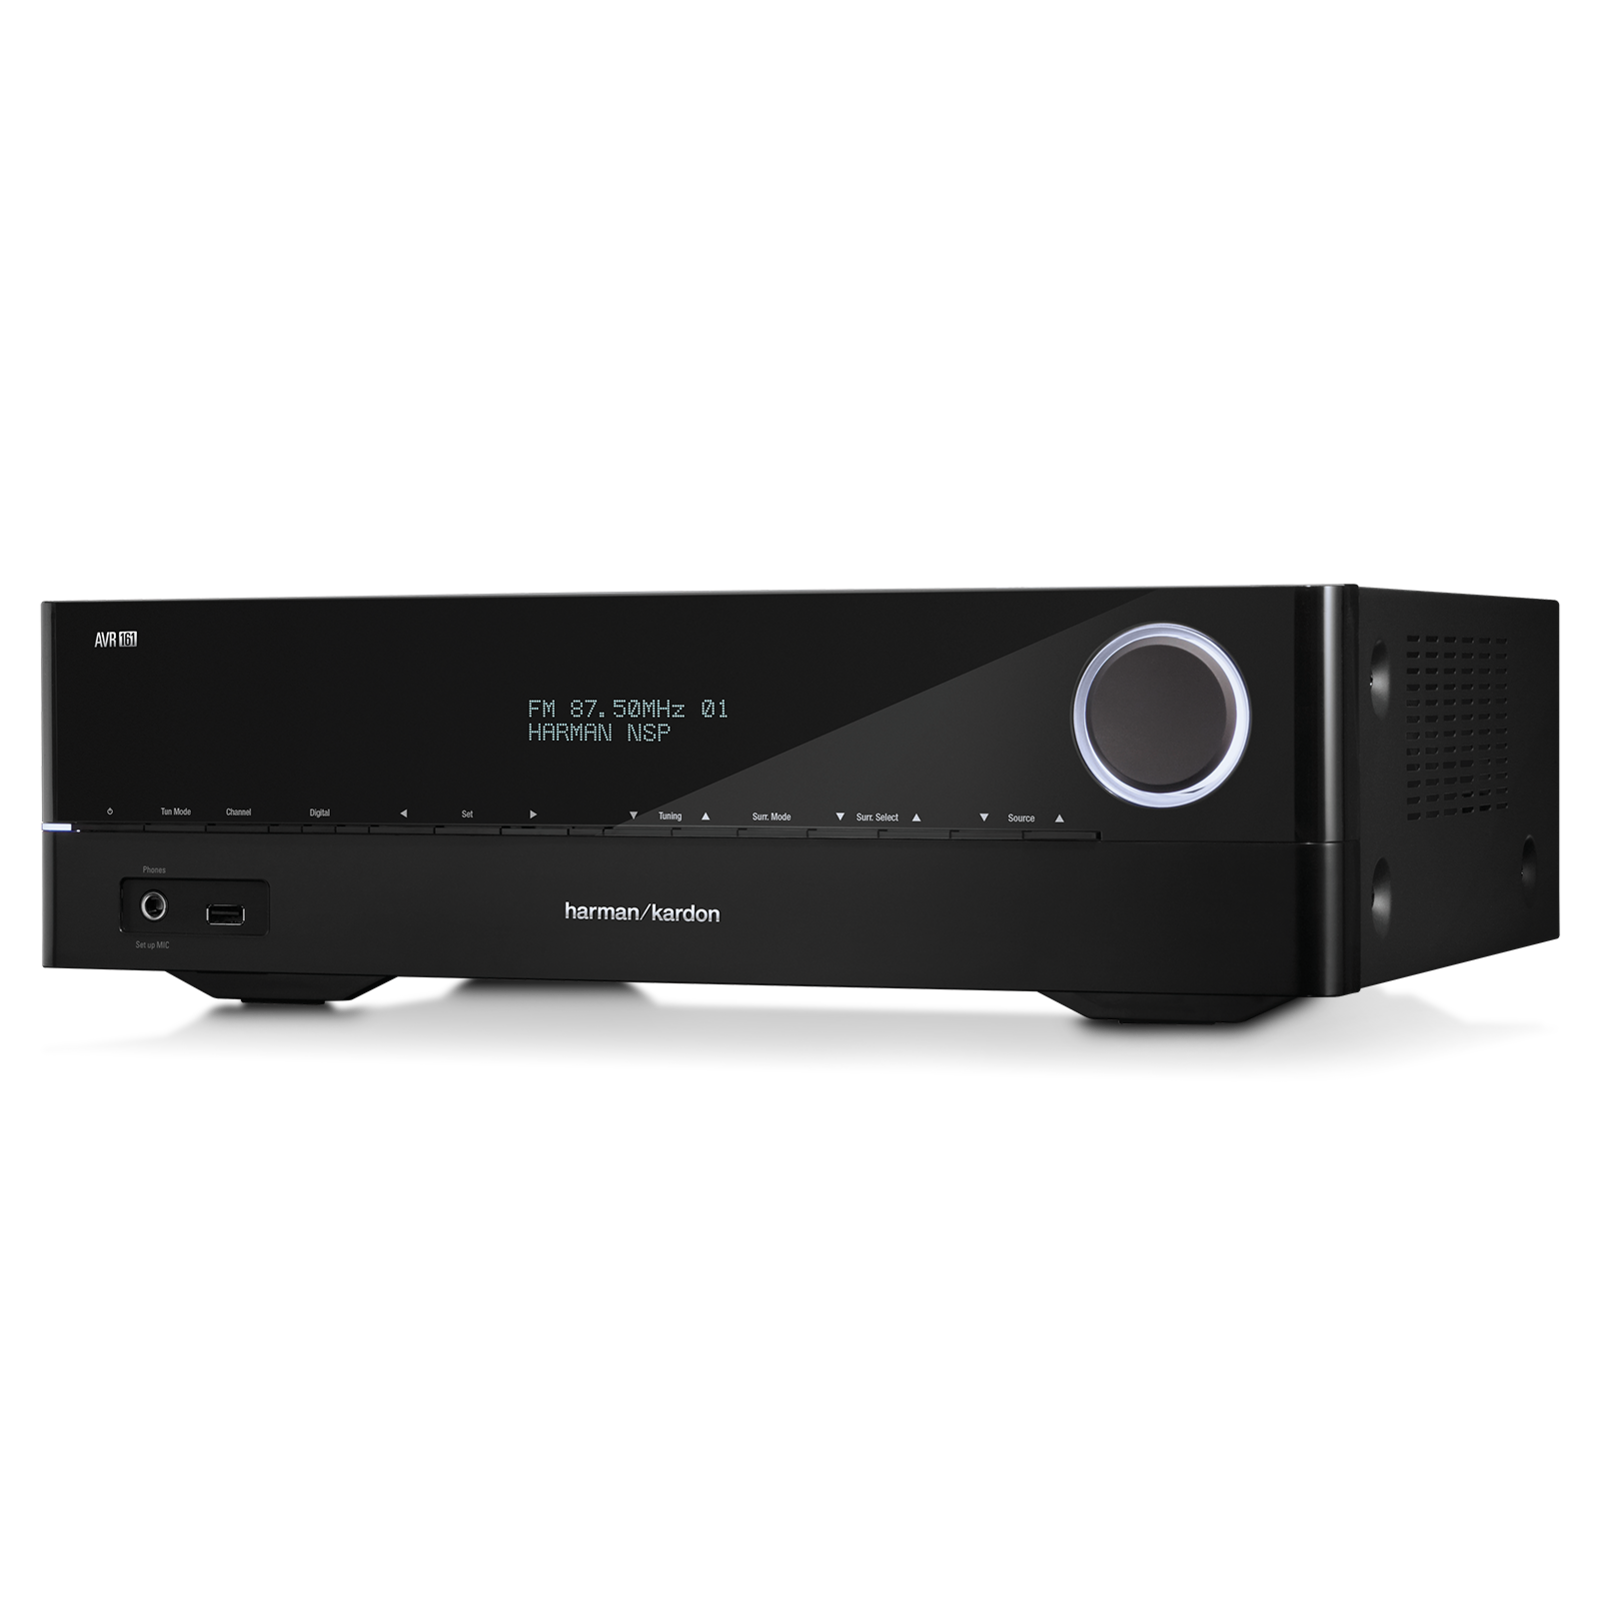 AVR 161 - Black - 425-watt, 5.1-channel, networked AVR with Bluetooth connectivity - Detailshot 2